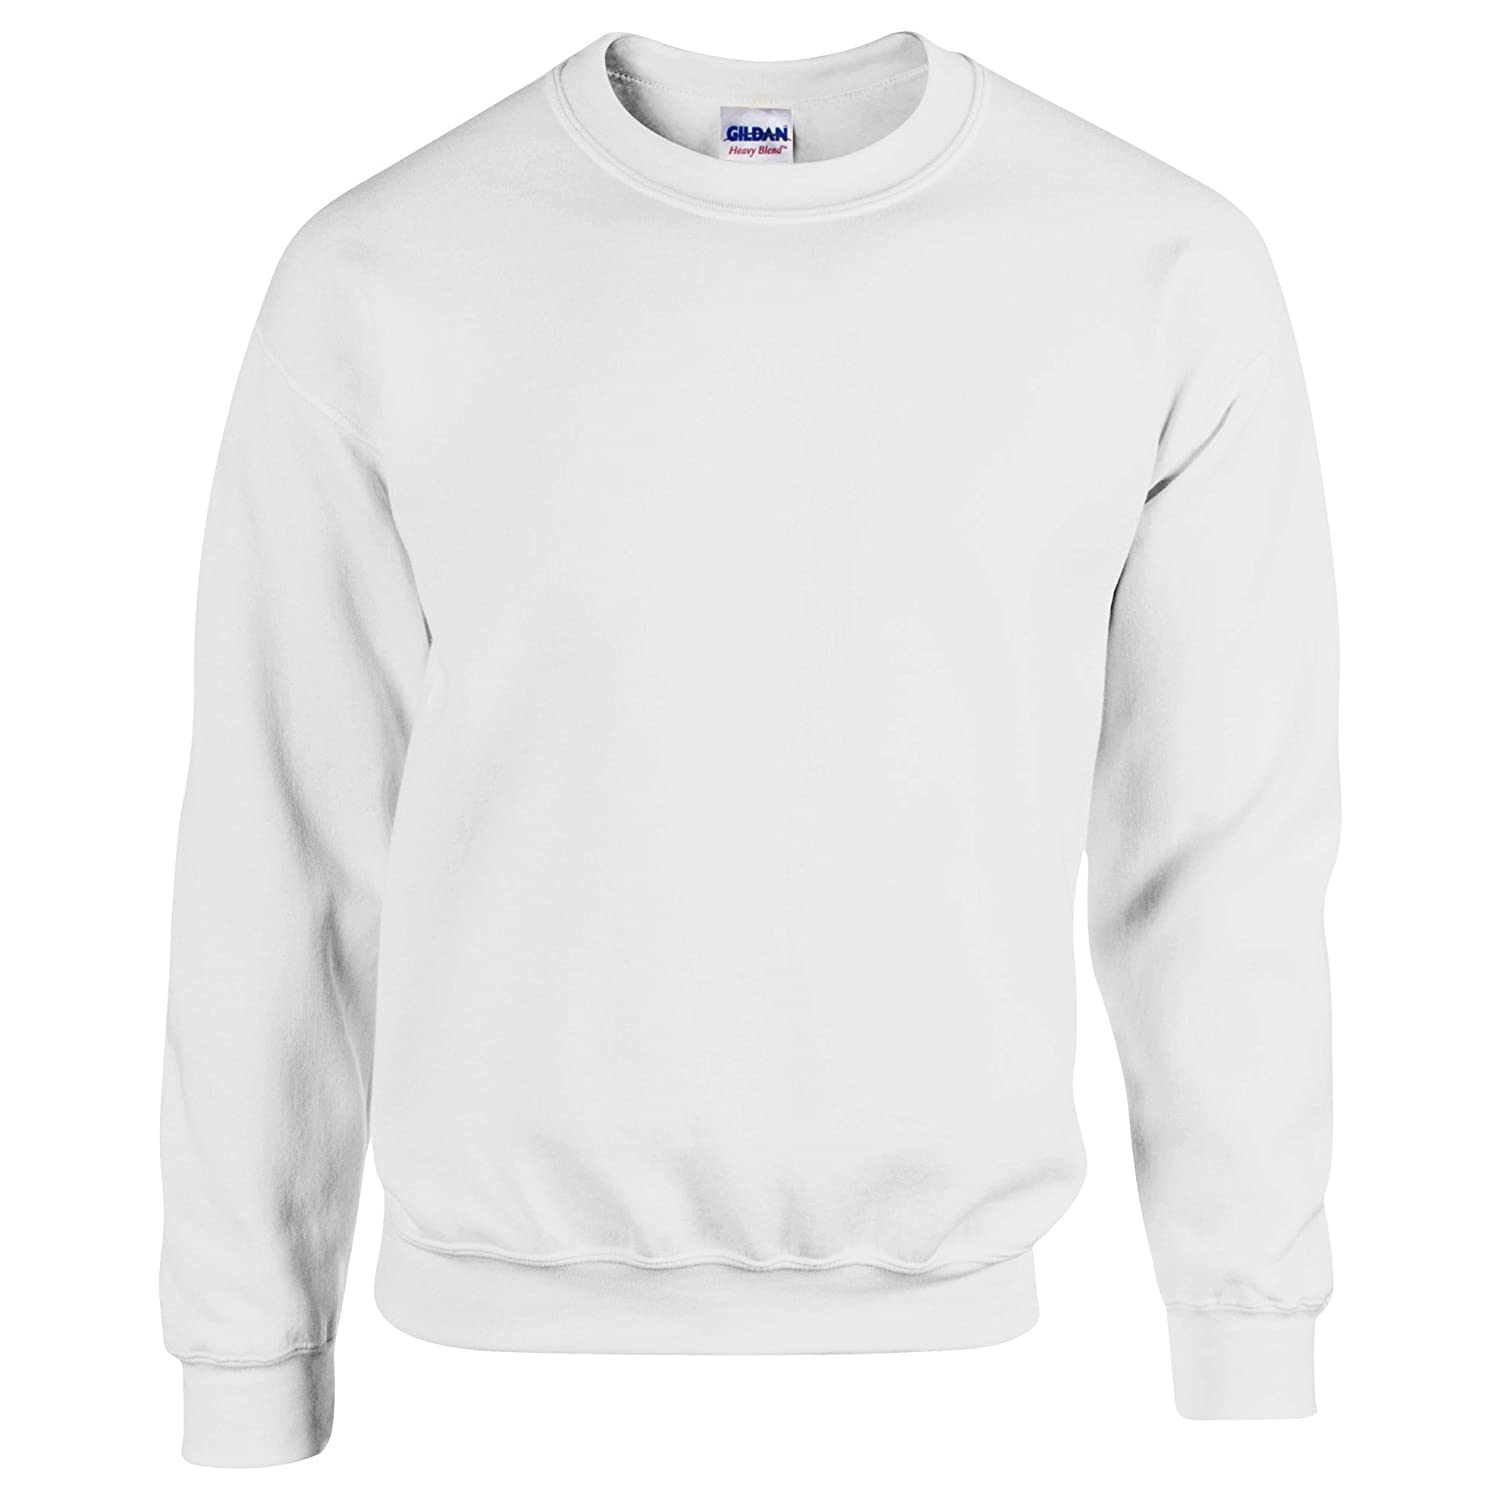 ca65e2bffa5ac Amazon.com: Gildan Heavy Blend Unisex Adult Crewneck Sweatshirt: Clothing